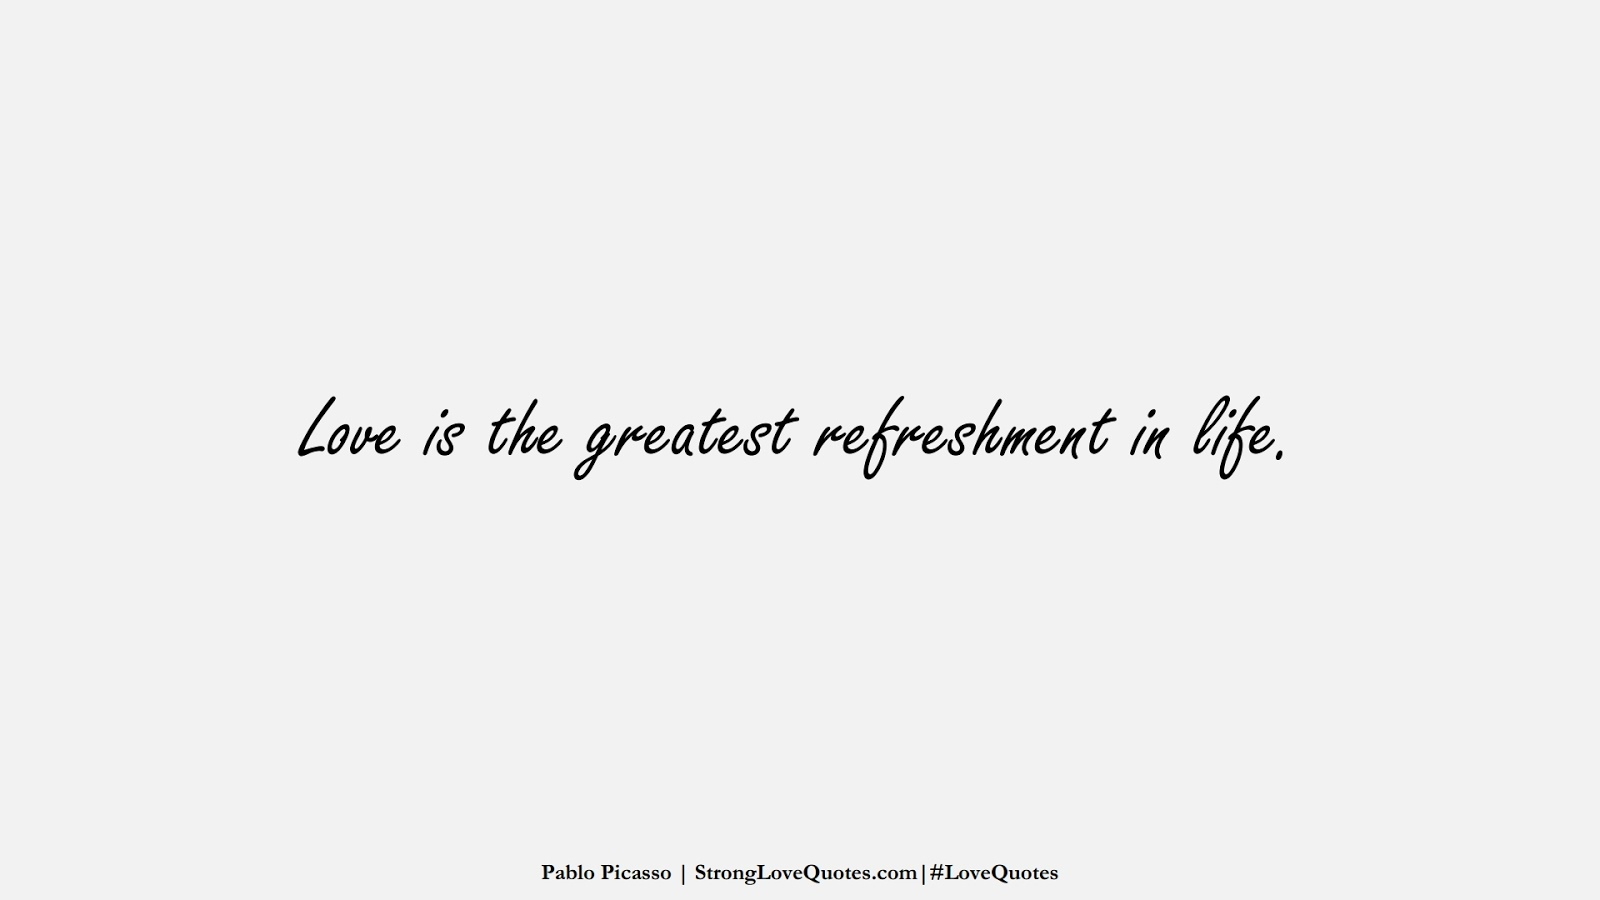 Love is the greatest refreshment in life. (Pablo Picasso);  #LoveQuotes